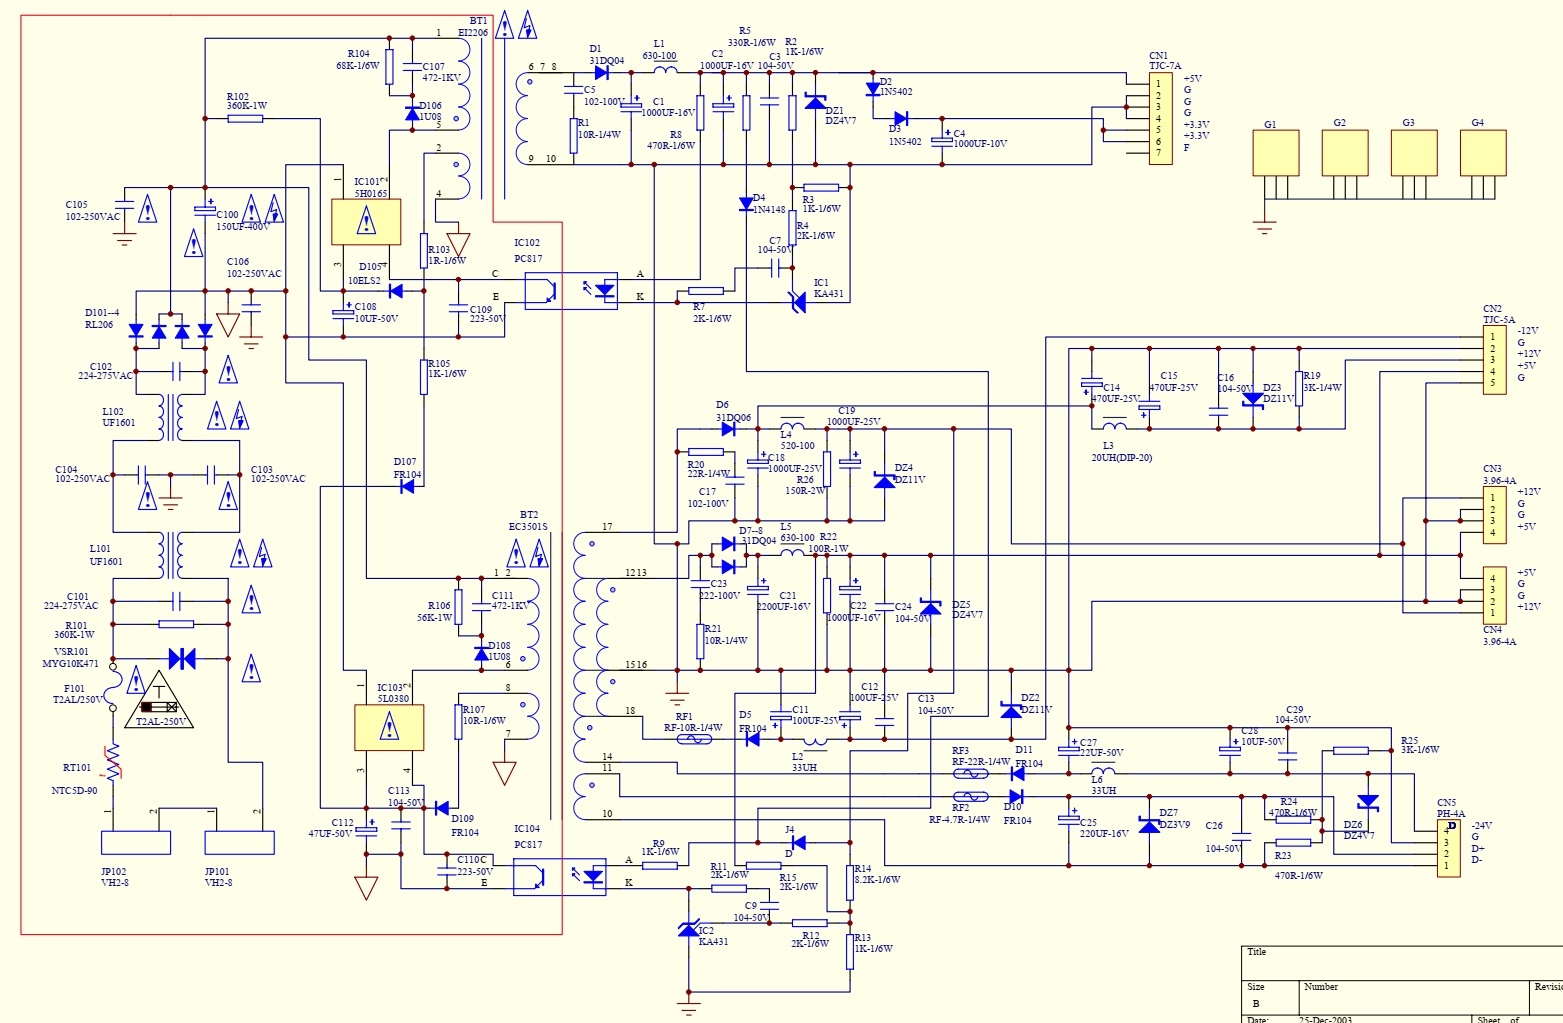 hight resolution of belson lcd tv powell i es6128 es7010 circuit diagram schematic full